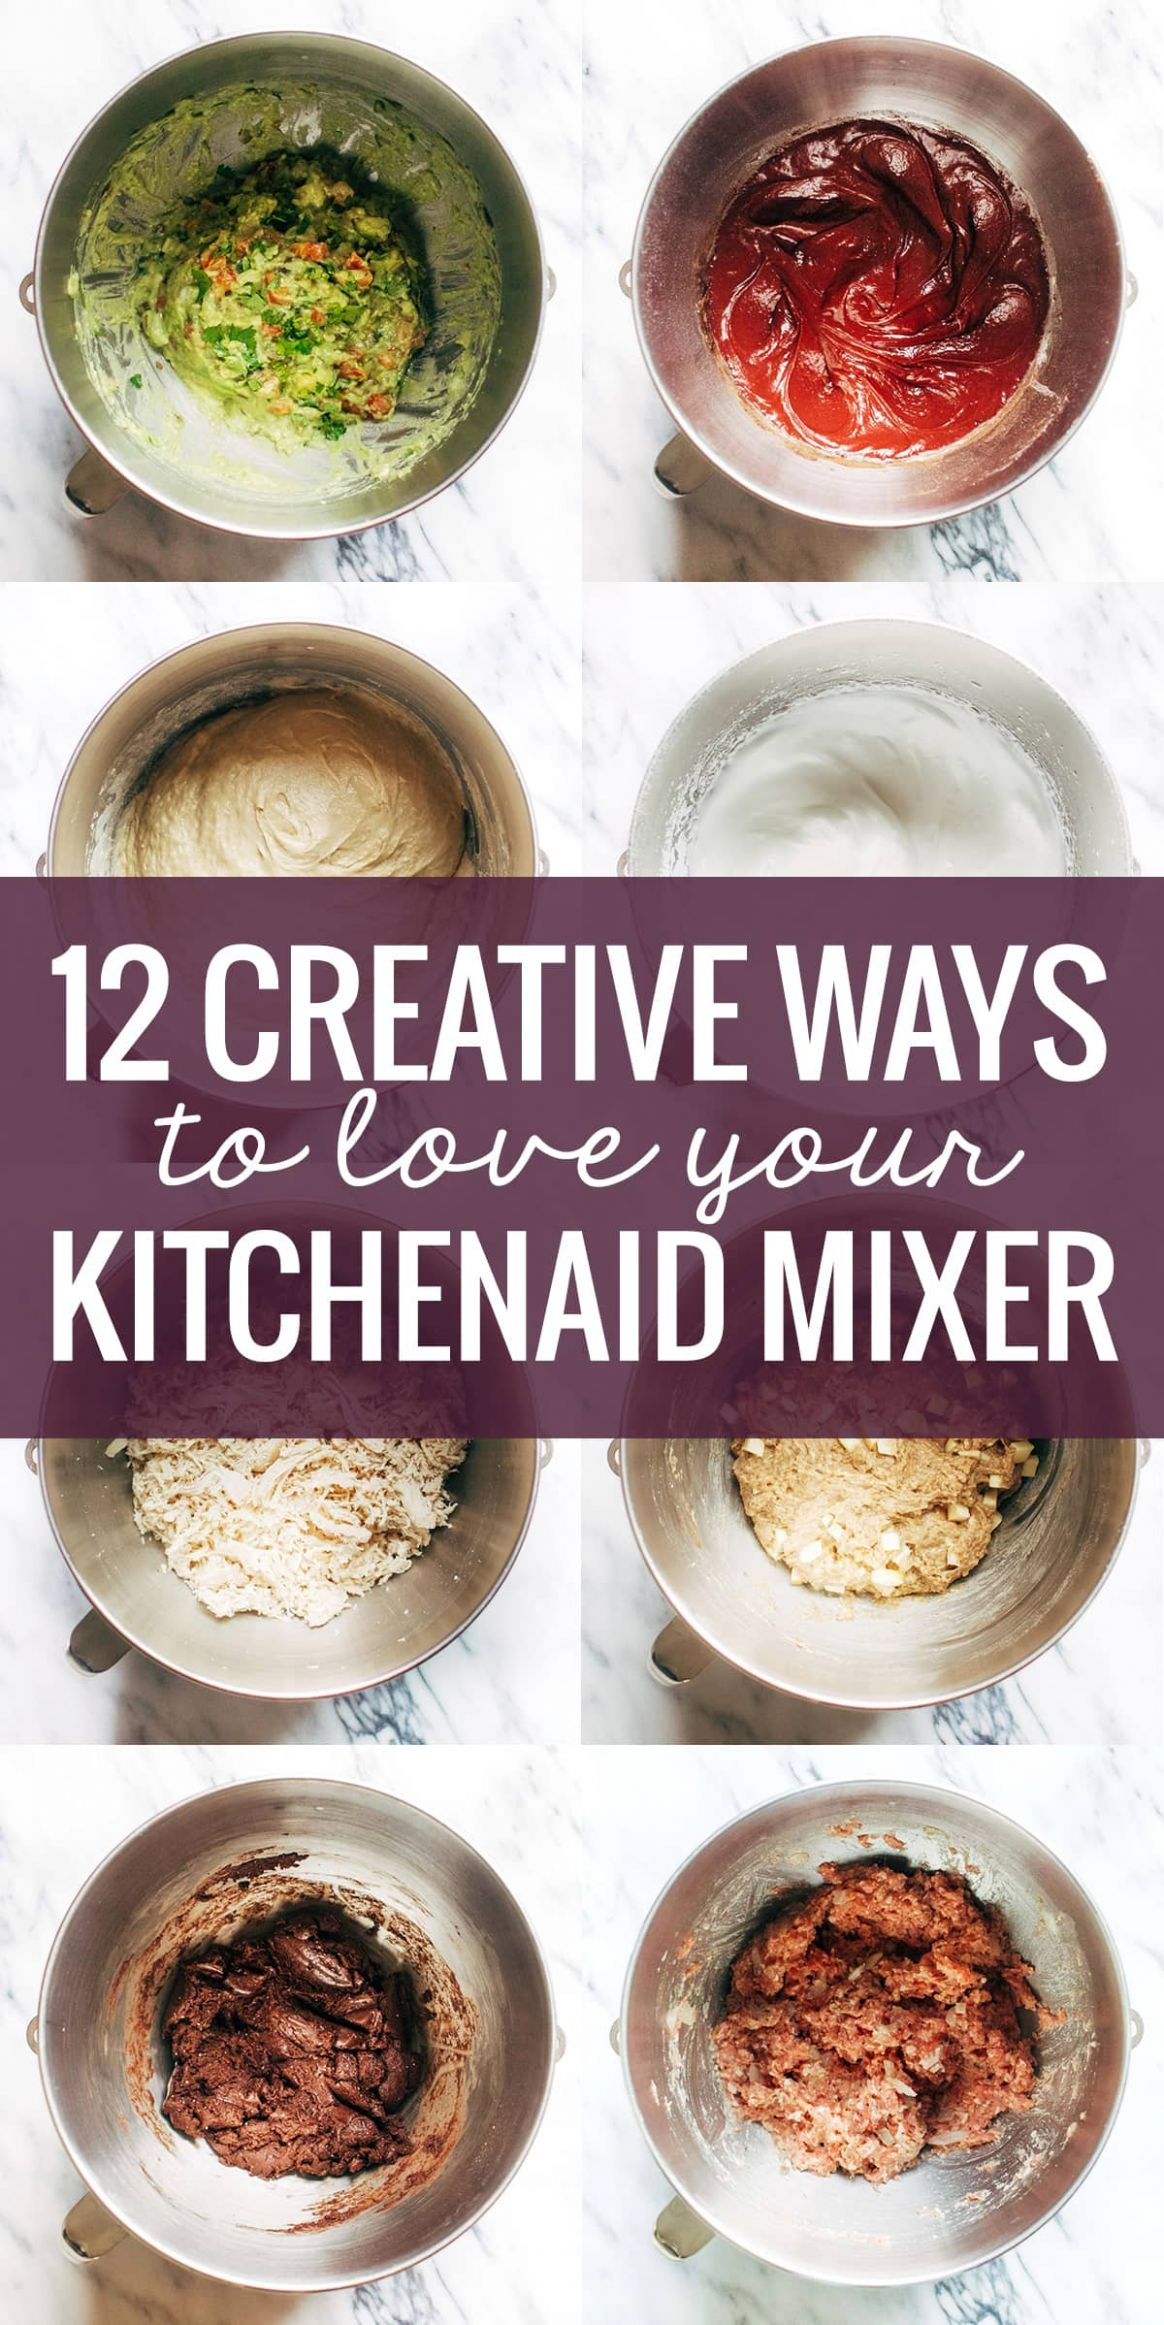 12 Creative Ways to Use A KitchenAid Mixer - Pinch of Yum - Dessert Recipes Kitchenaid Mixer